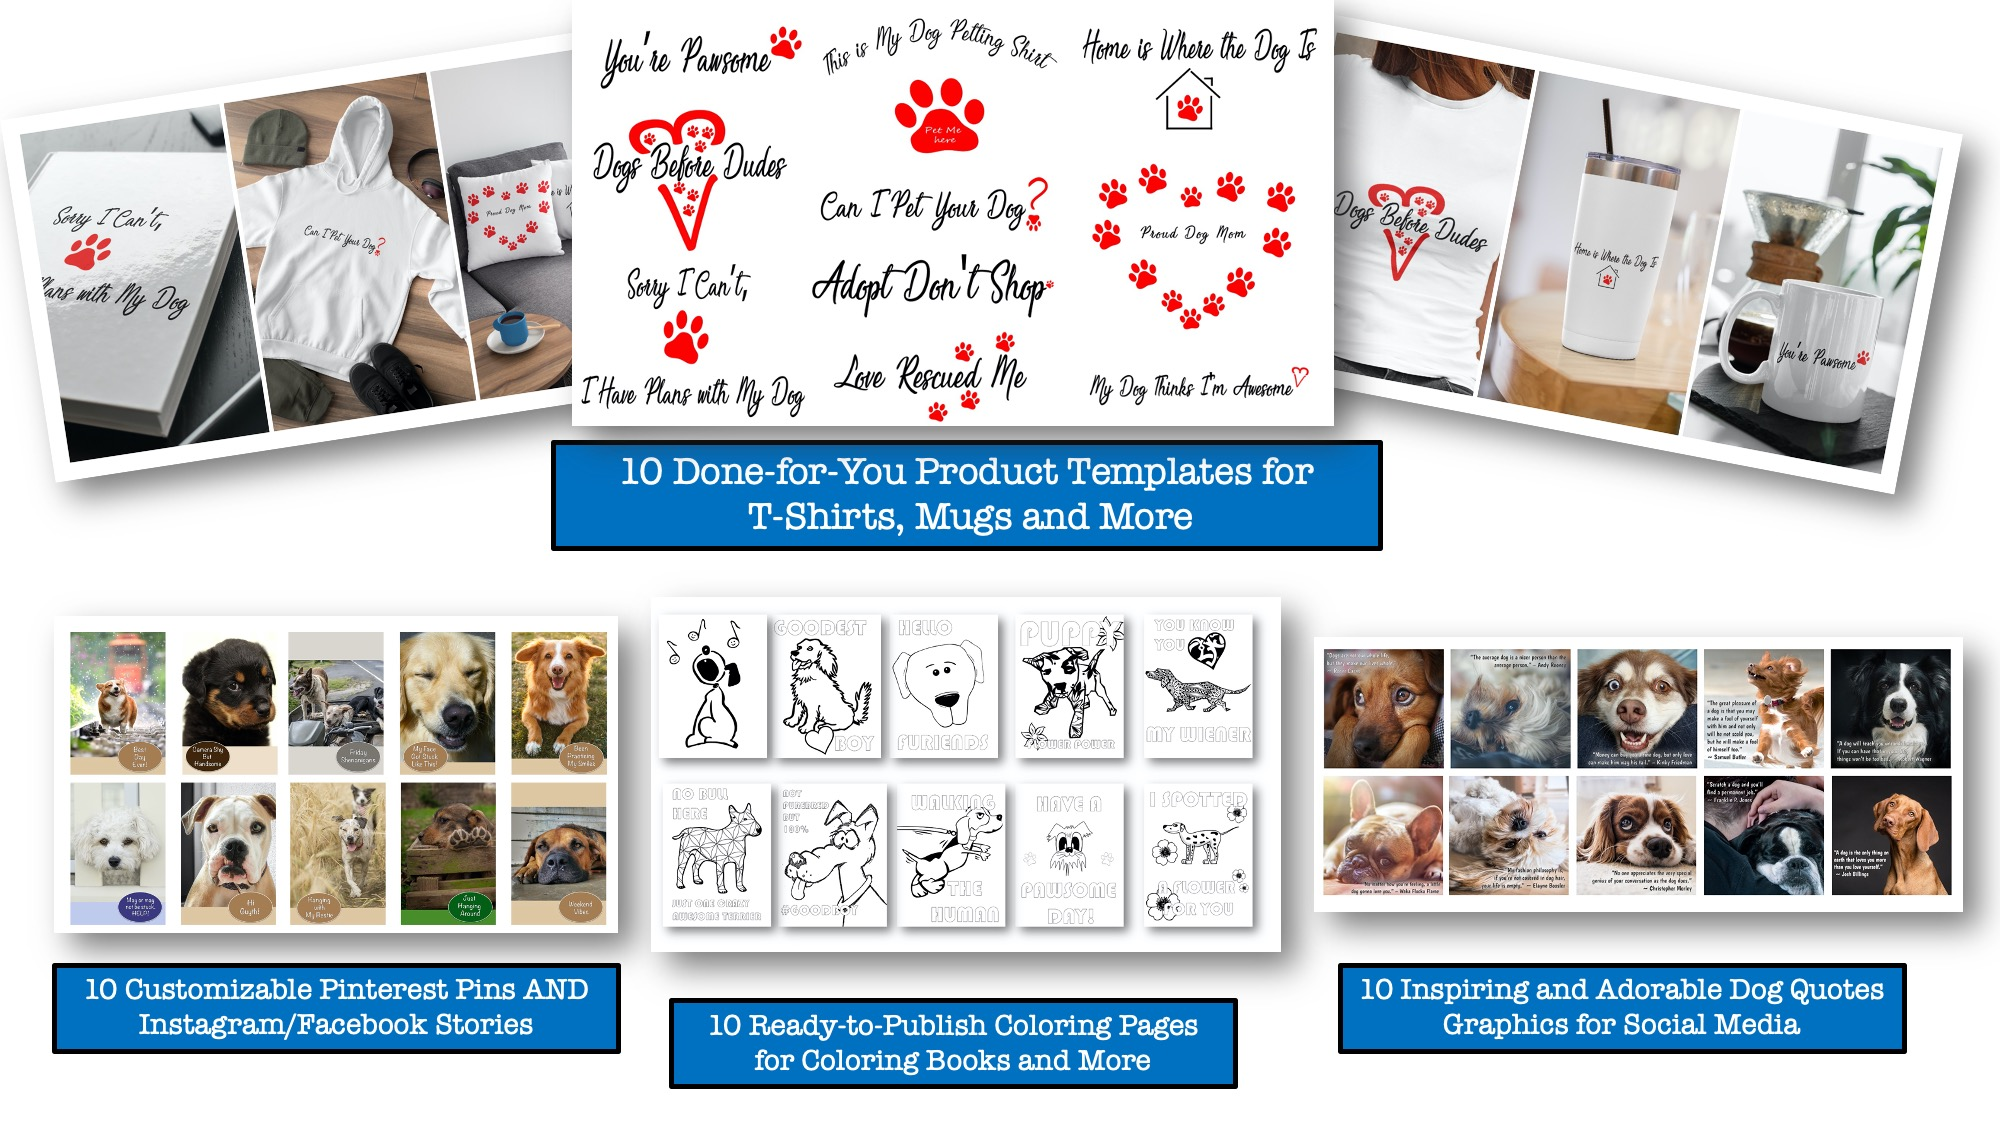 Product & Social Media Templates for the Dog Niche with PLR Rights